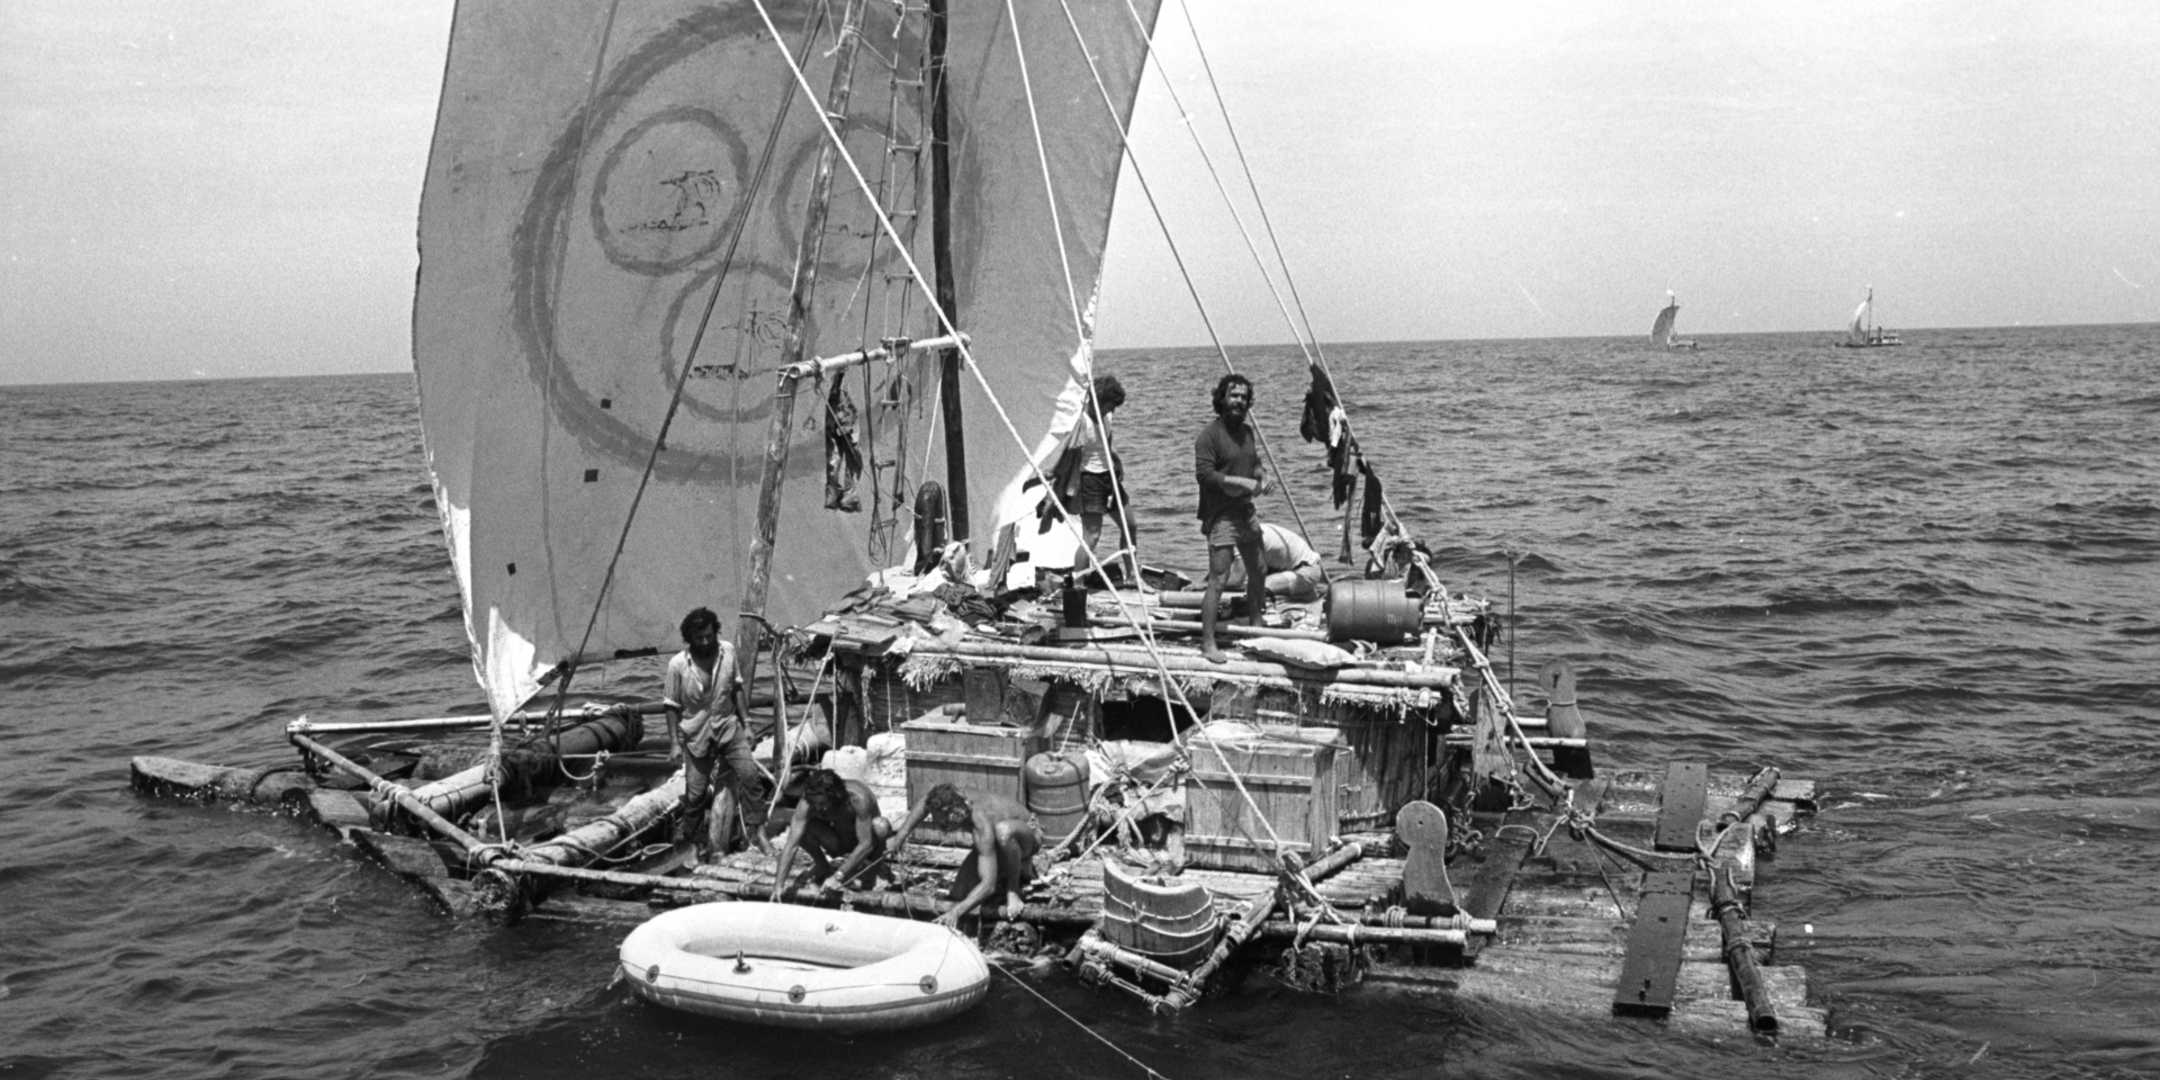 One of the Las Balsas rafts at sea, with the other two rafts in the background, 1973. Photograph by John Carnemolla. Image reproduced courtesy Ballina Naval & Maritime Museum